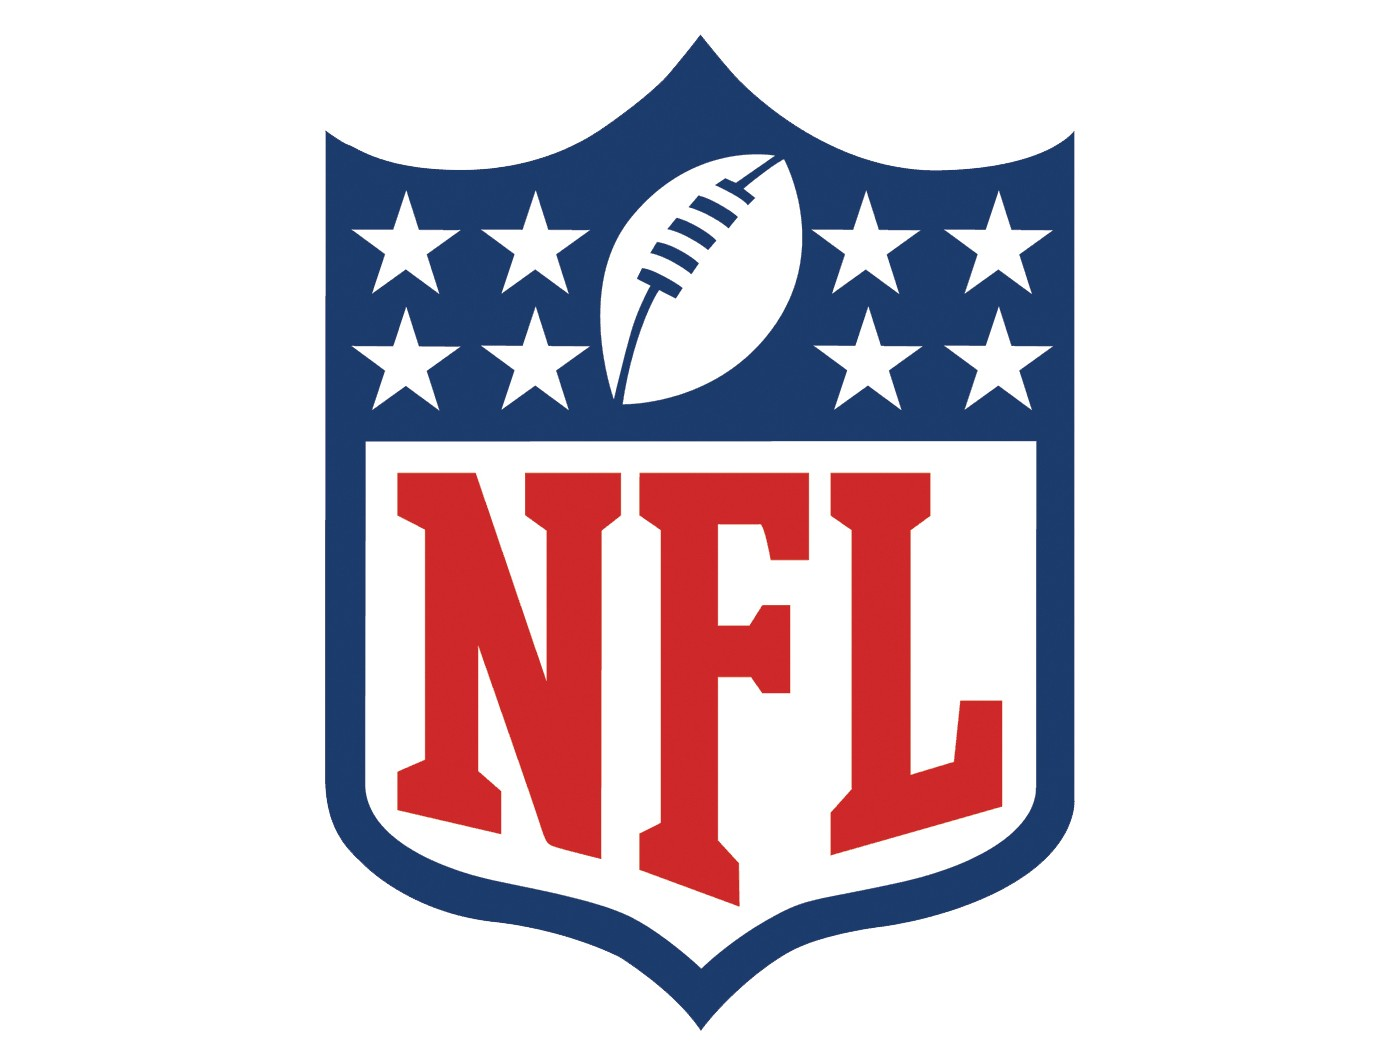 Write a 400 word SEO optimized article about the NFL